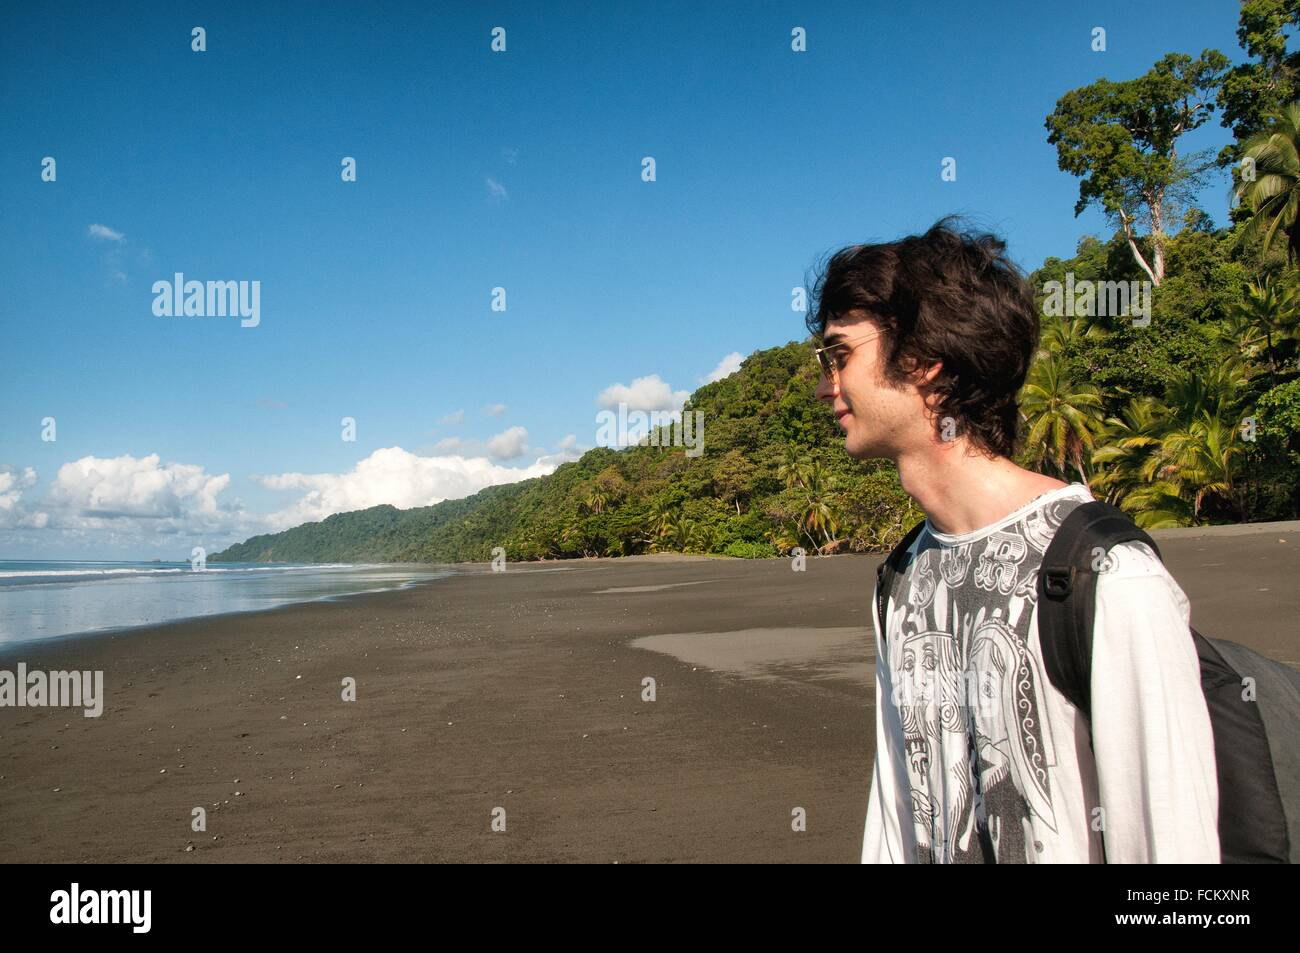 young male European traveller on empty beach, wild coast of the Pacific Ocean, Corcovado National Park, Costa Rica,. - Stock Image